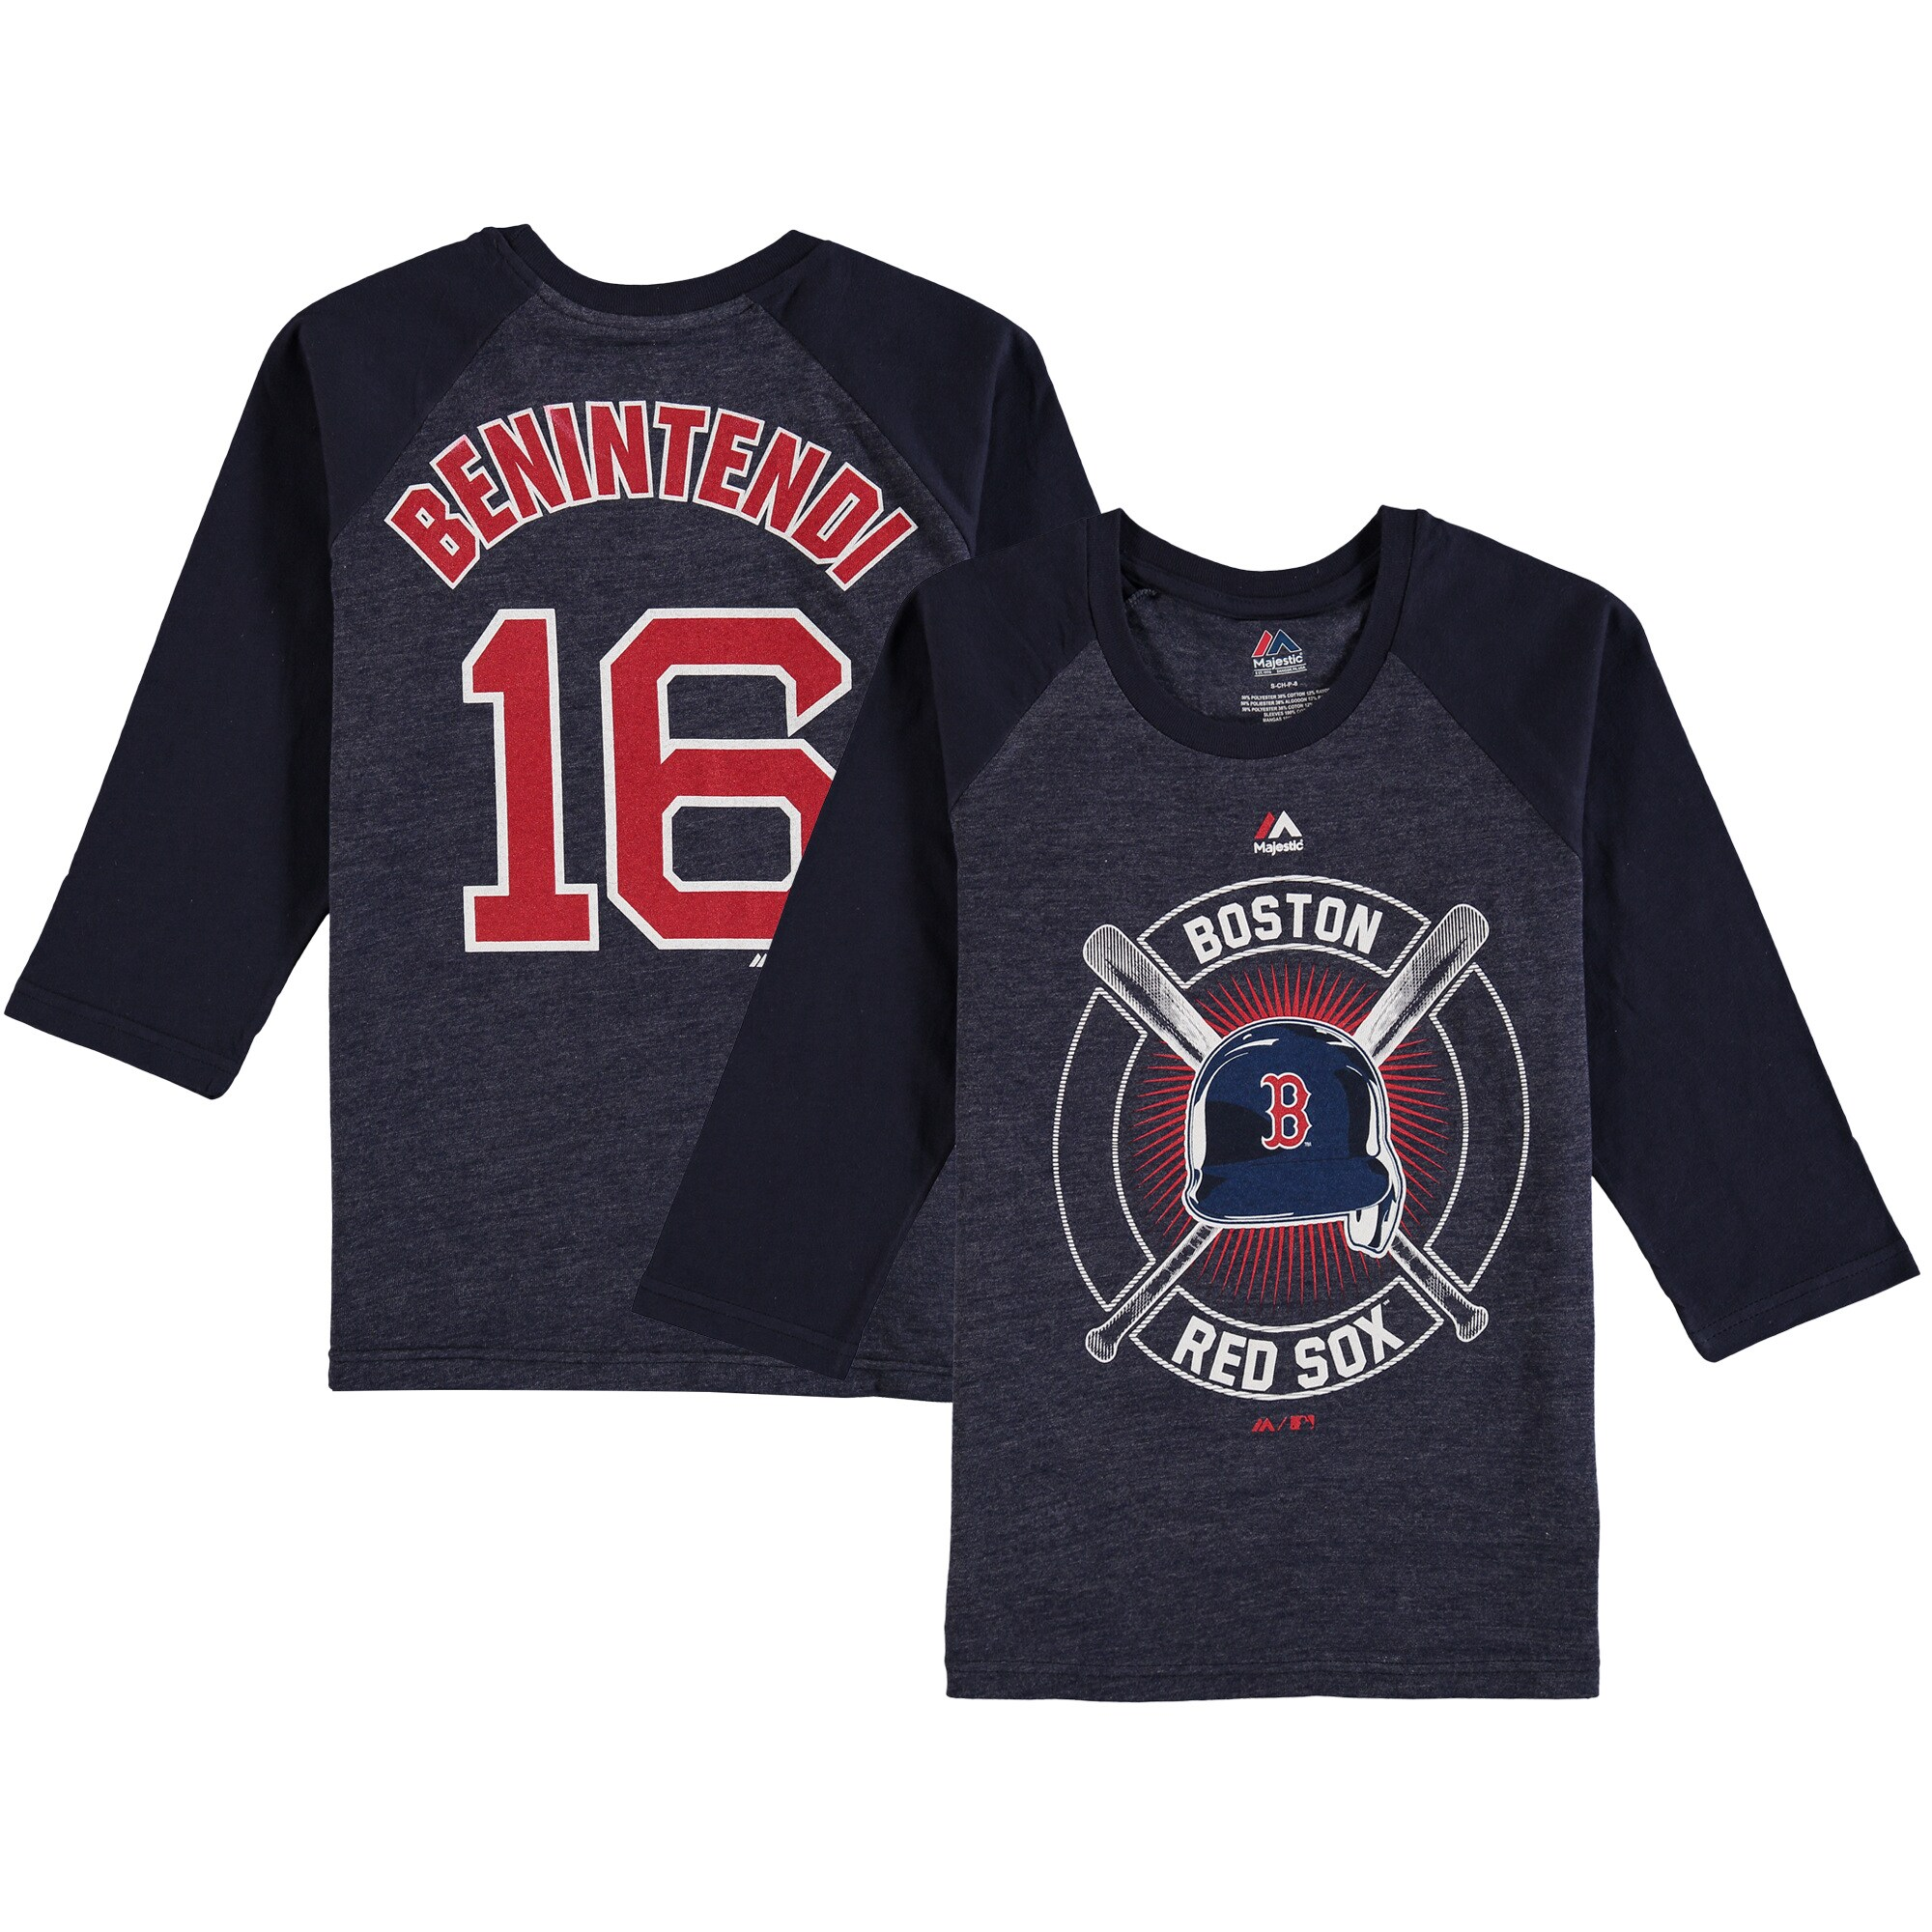 Andrew Benintendi Boston Red Sox Youth Name & Number Tri-Blend 3/4-Sleeve Raglan T-Shirt - Navy